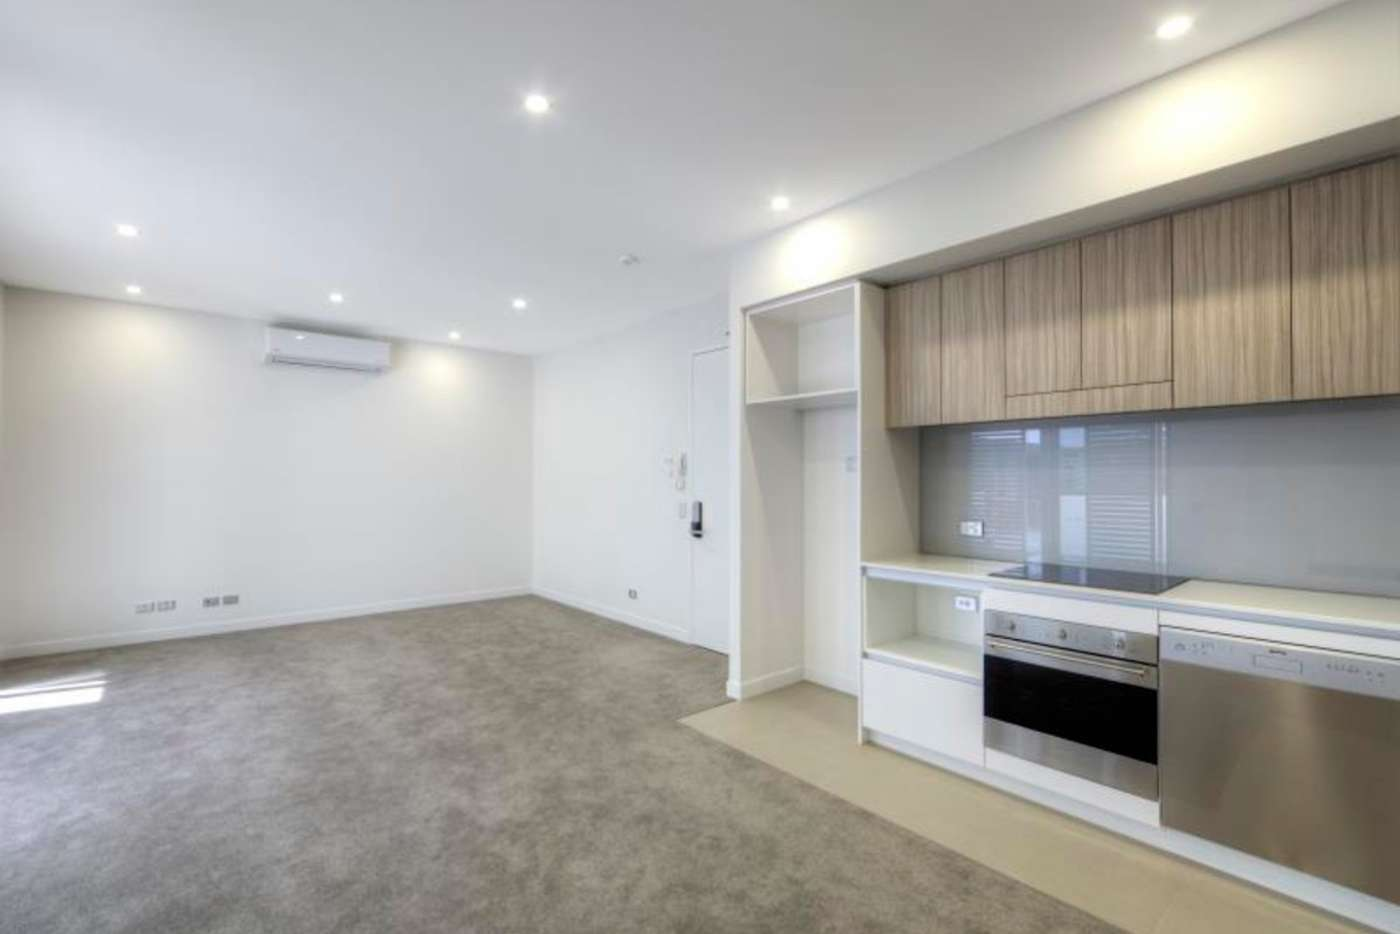 Fifth view of Homely apartment listing, 9/9 Hawksburn Road, Rivervale WA 6103